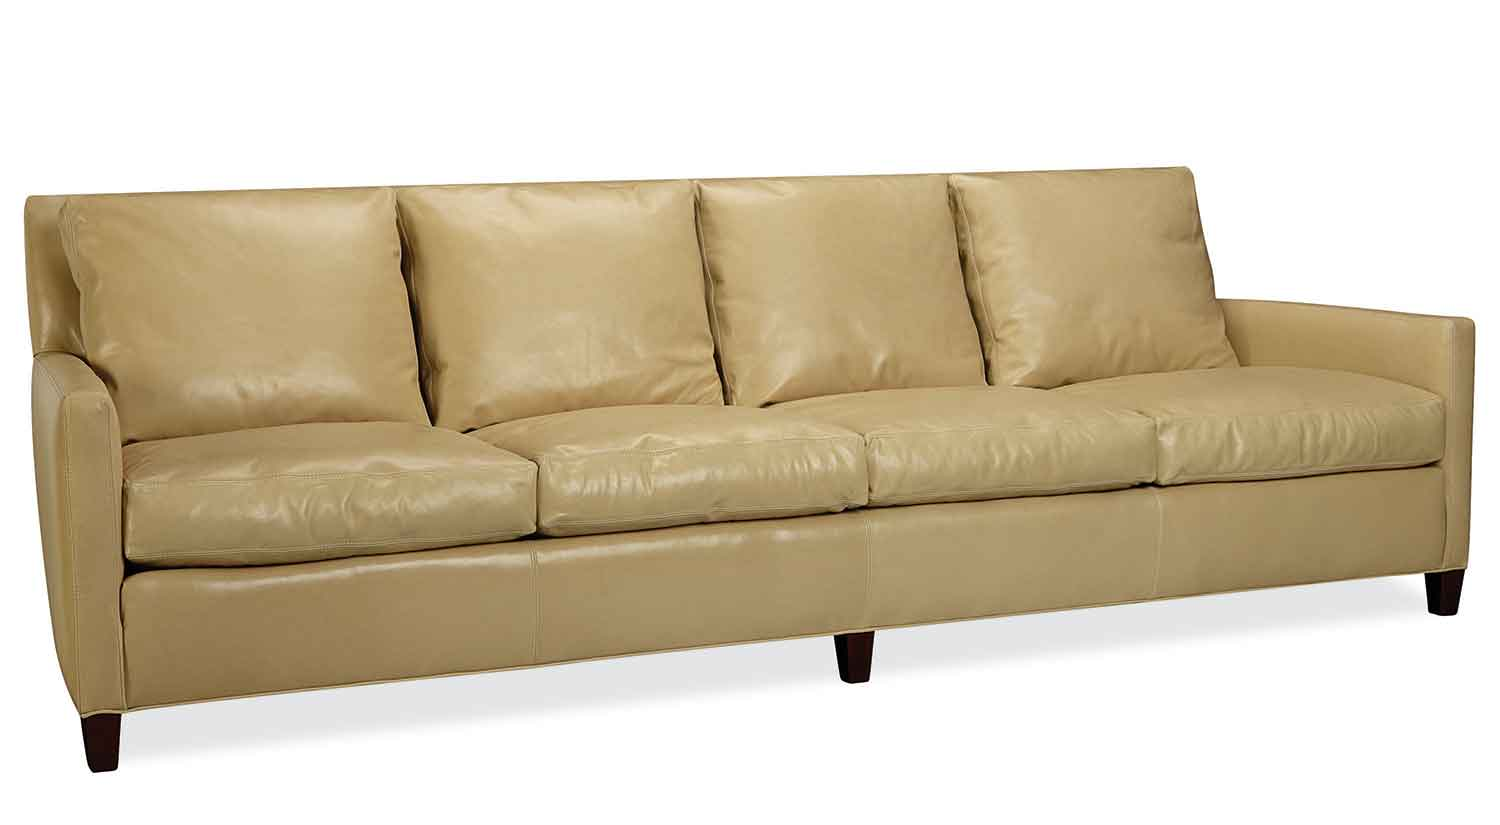 Circle Furniture - Maddie 4 Seat Sofa | Long Sofas Boston ...